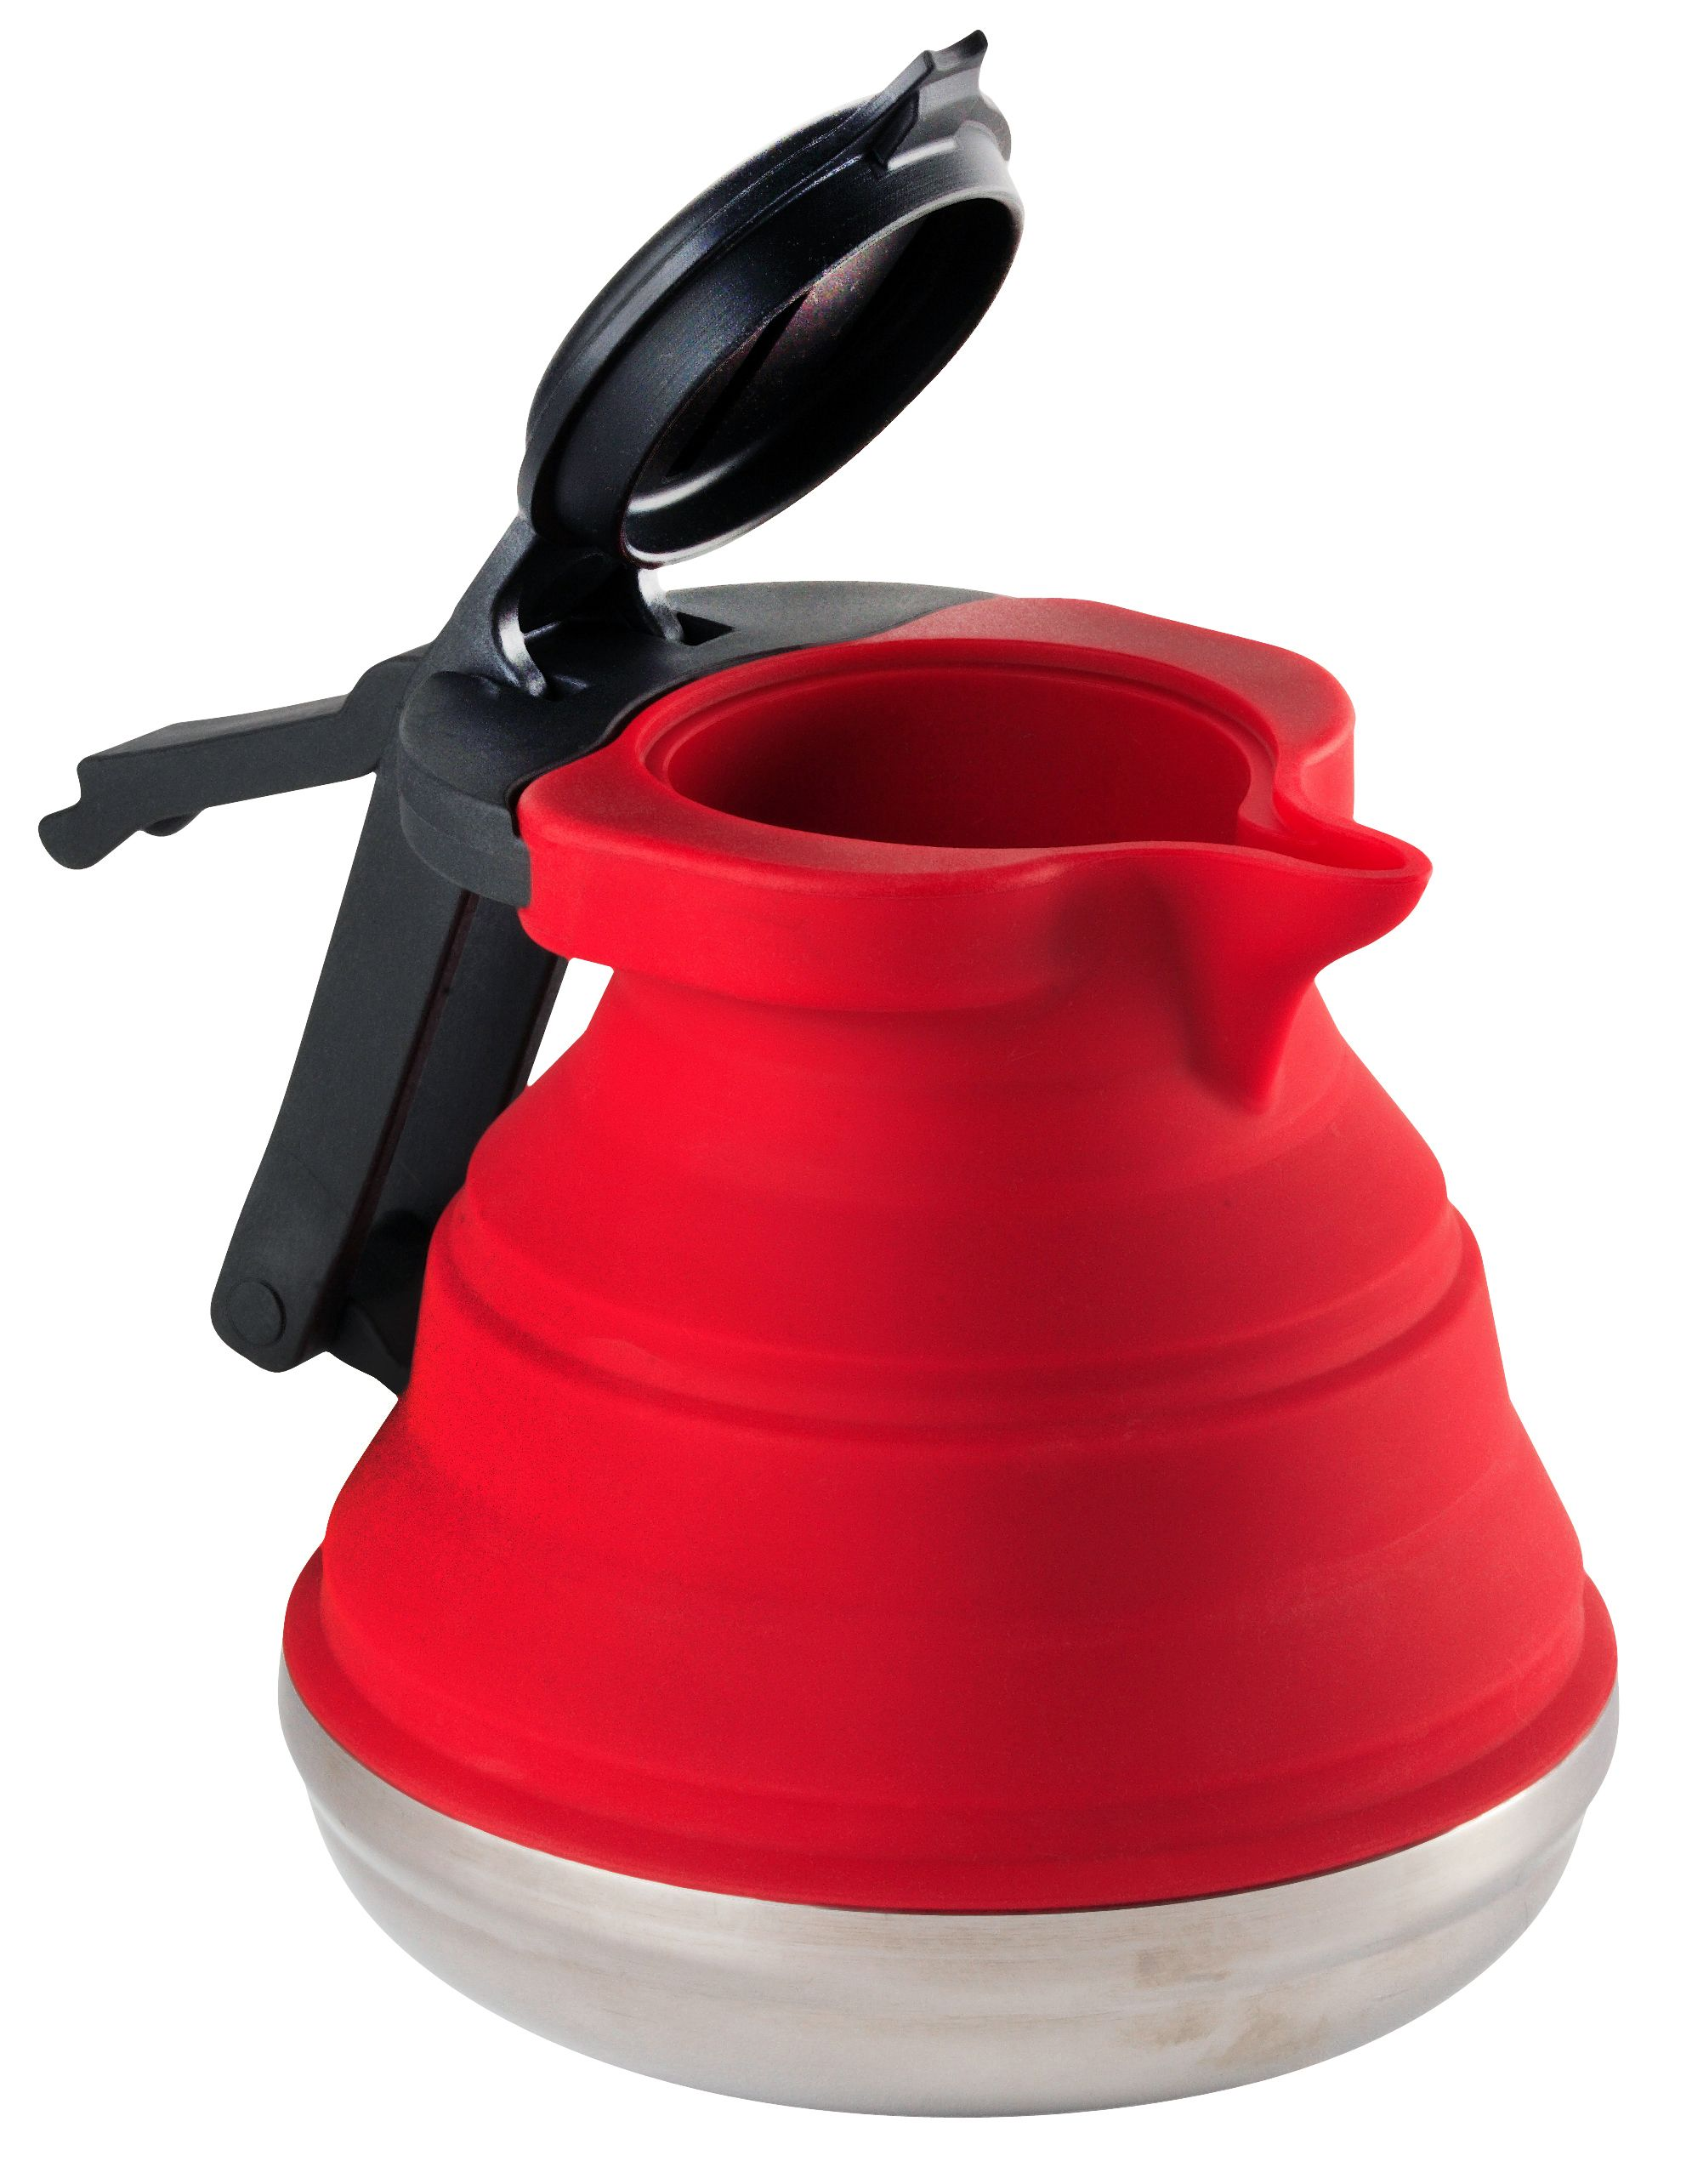 wacky-practicals-collapsible-kettle-folds-flat-to-less-than-6cm-5142-p